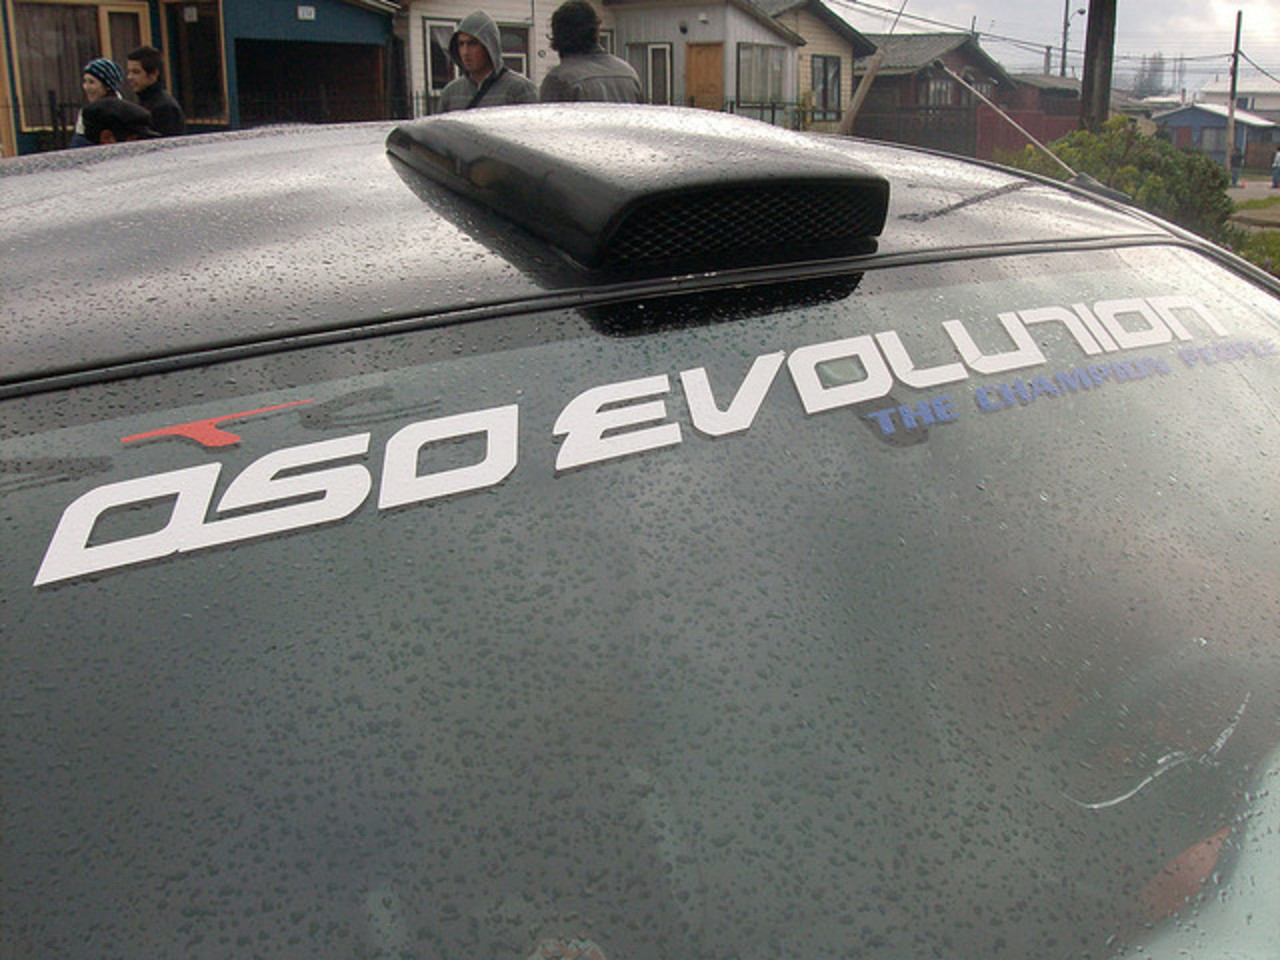 mazda artis OSO EVOLUTION | Flickr - Photo Sharing!